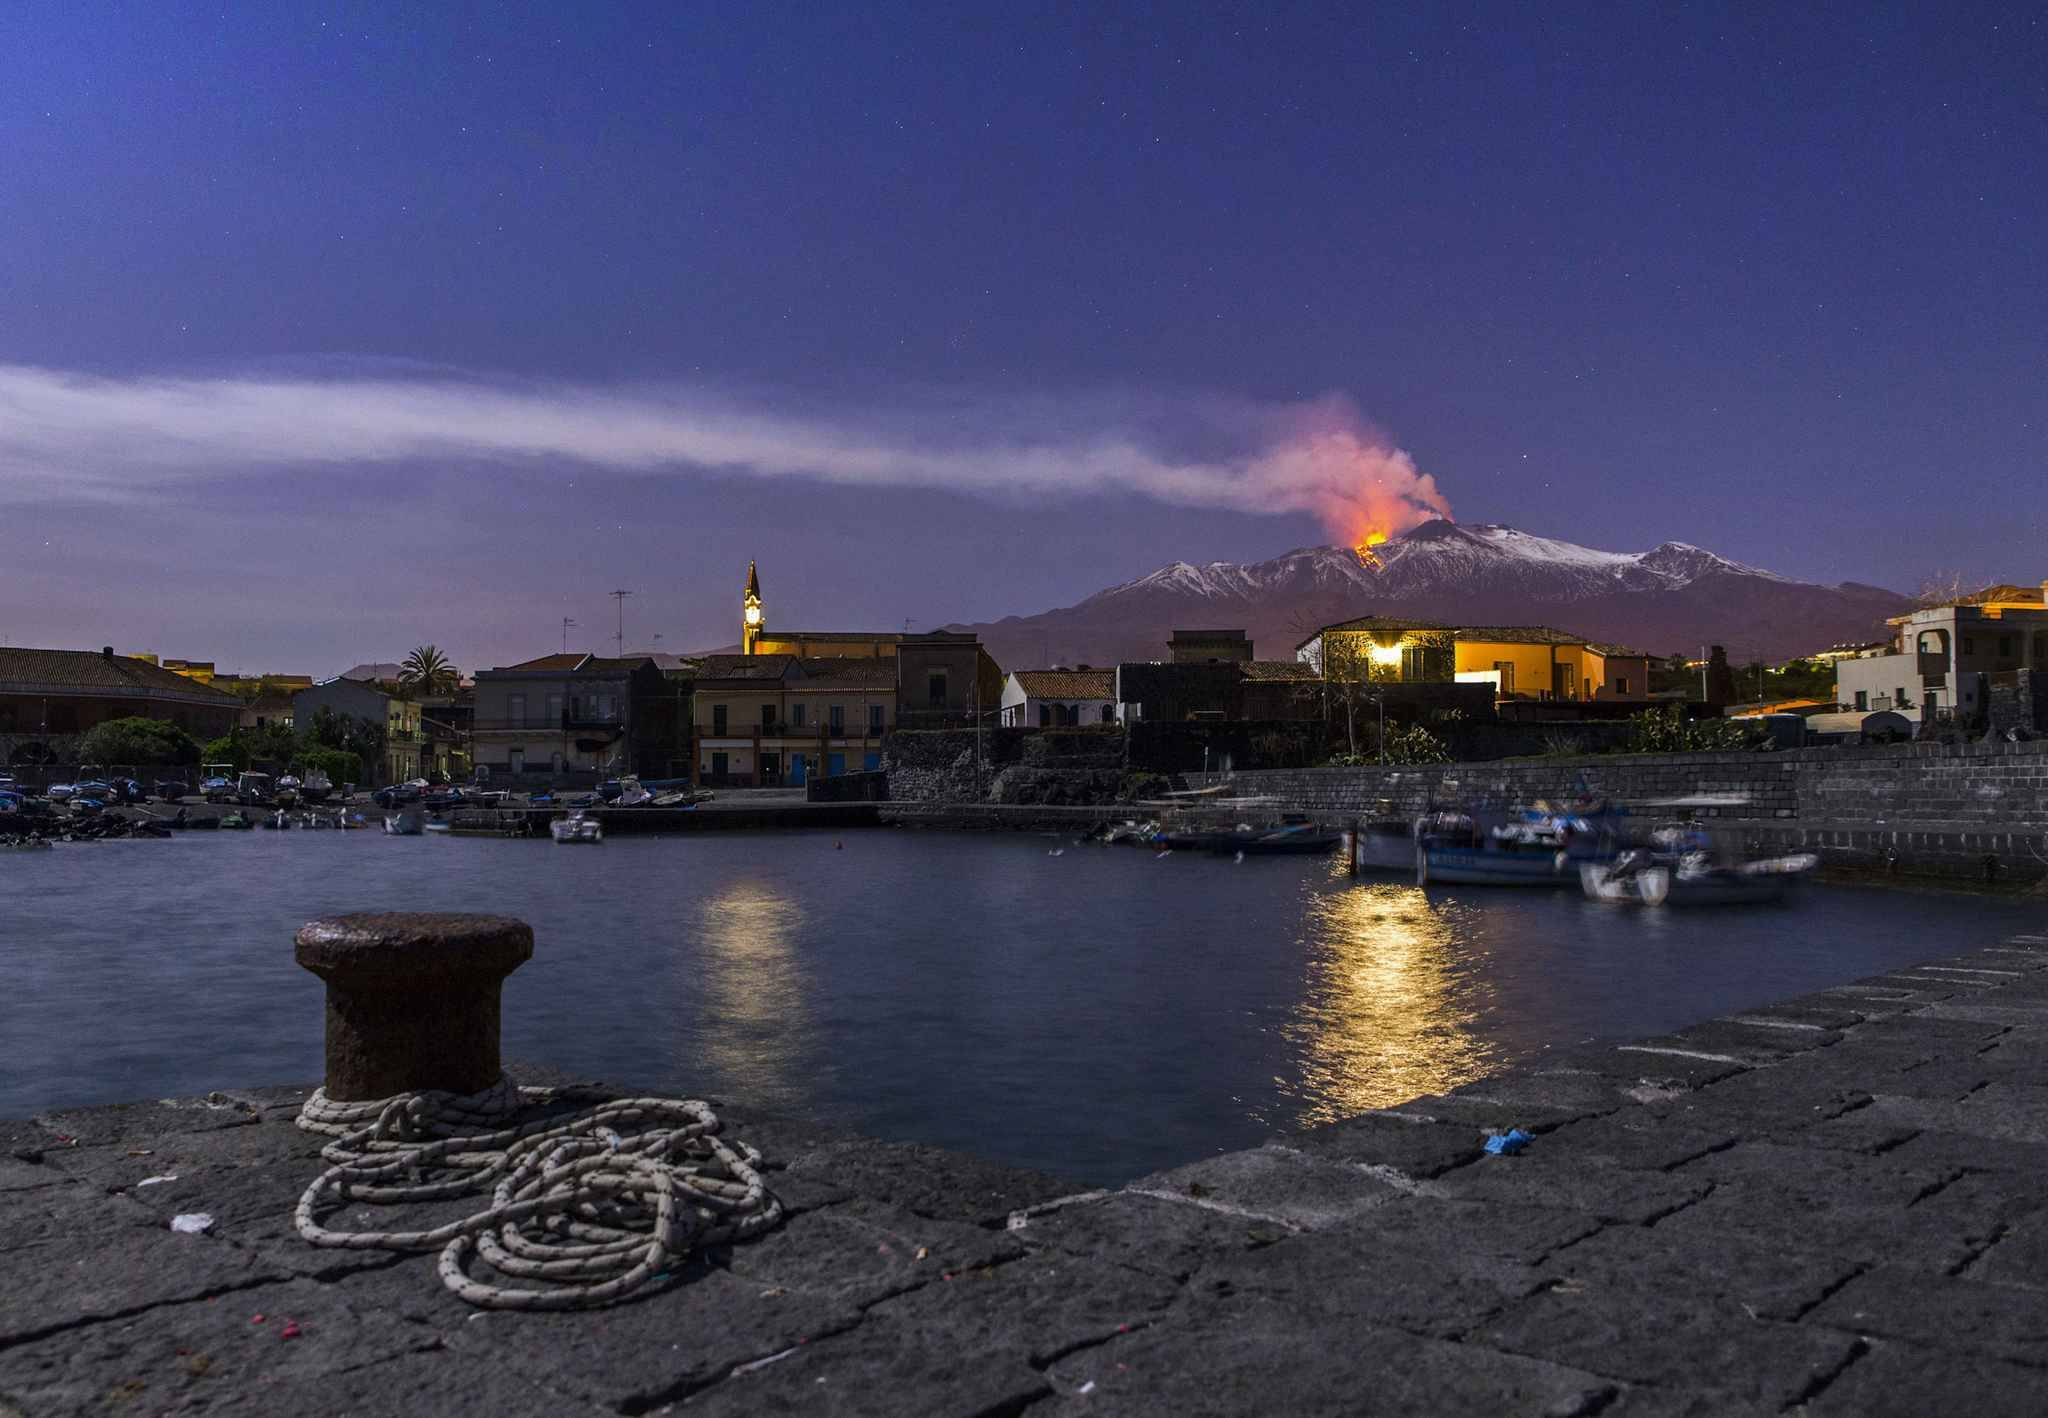 Snow-covered Mount Etna, Europe's most active volcano, spews lava during an eruption as the Sicilian village of Pozzillo, Italy, is visible in foreground, in the early hours of Tuesday, April 11, 2017.